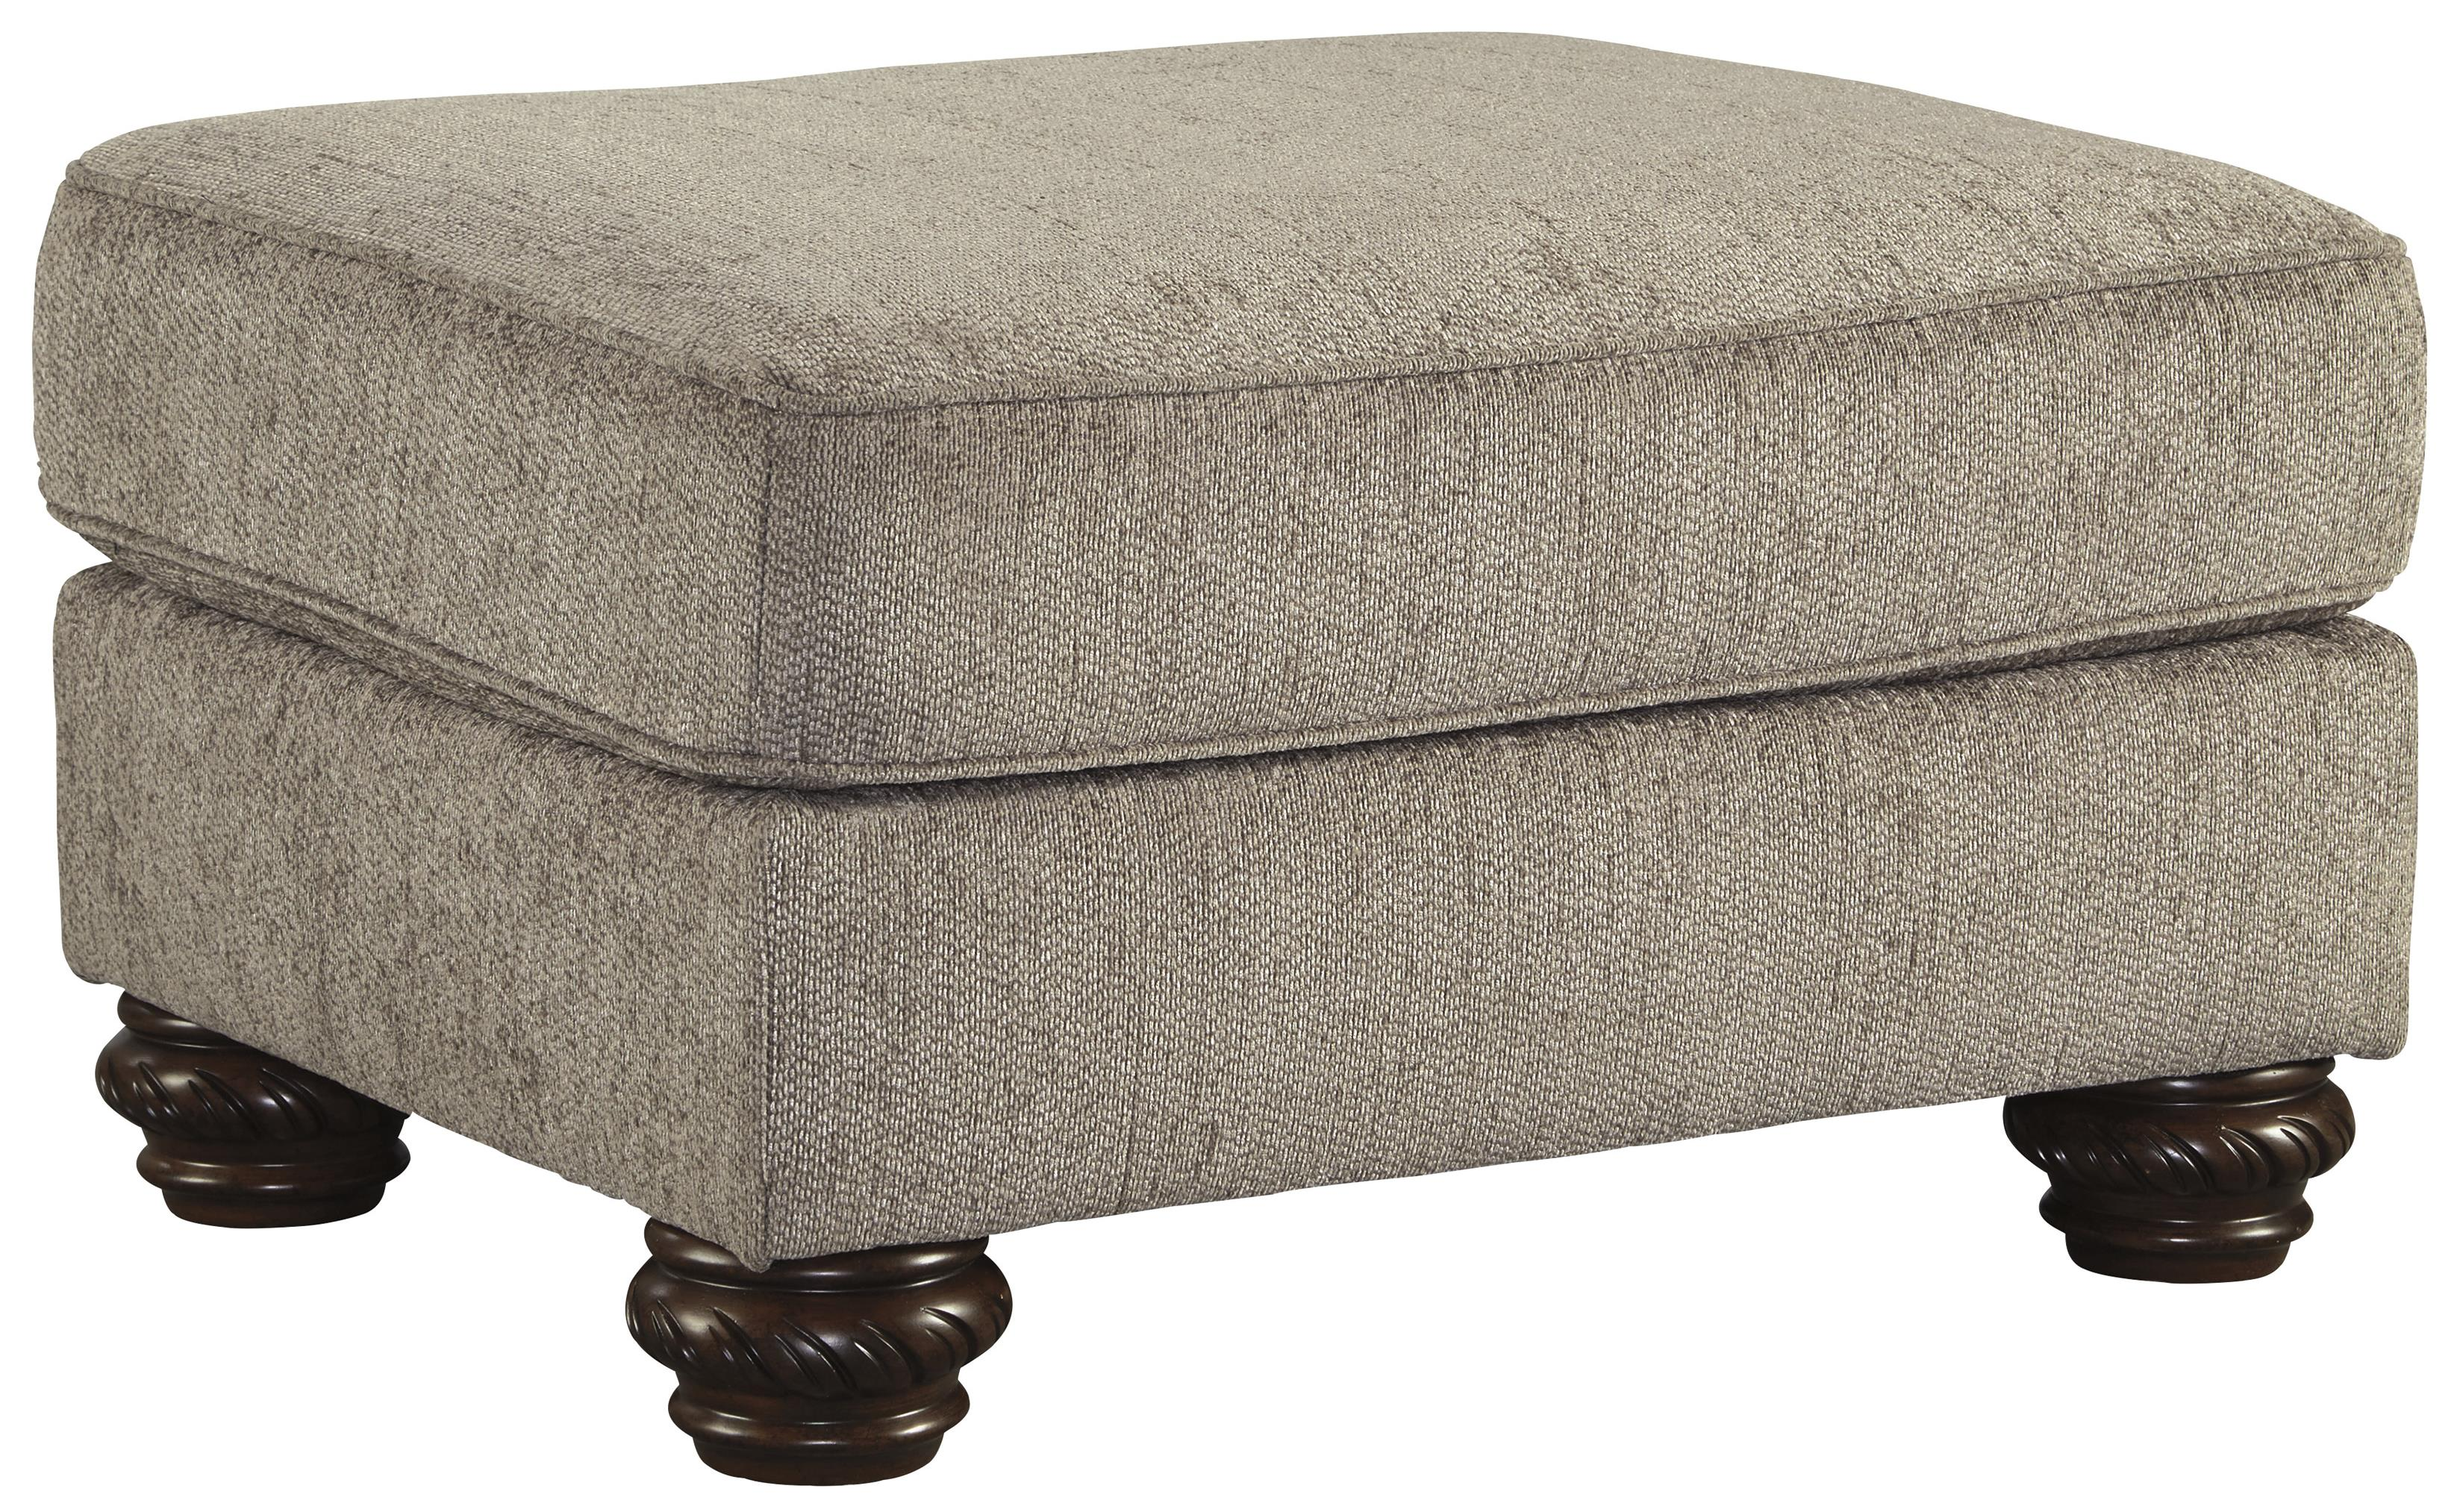 Signature Design by Ashley Cecilyn Traditional Ottoman